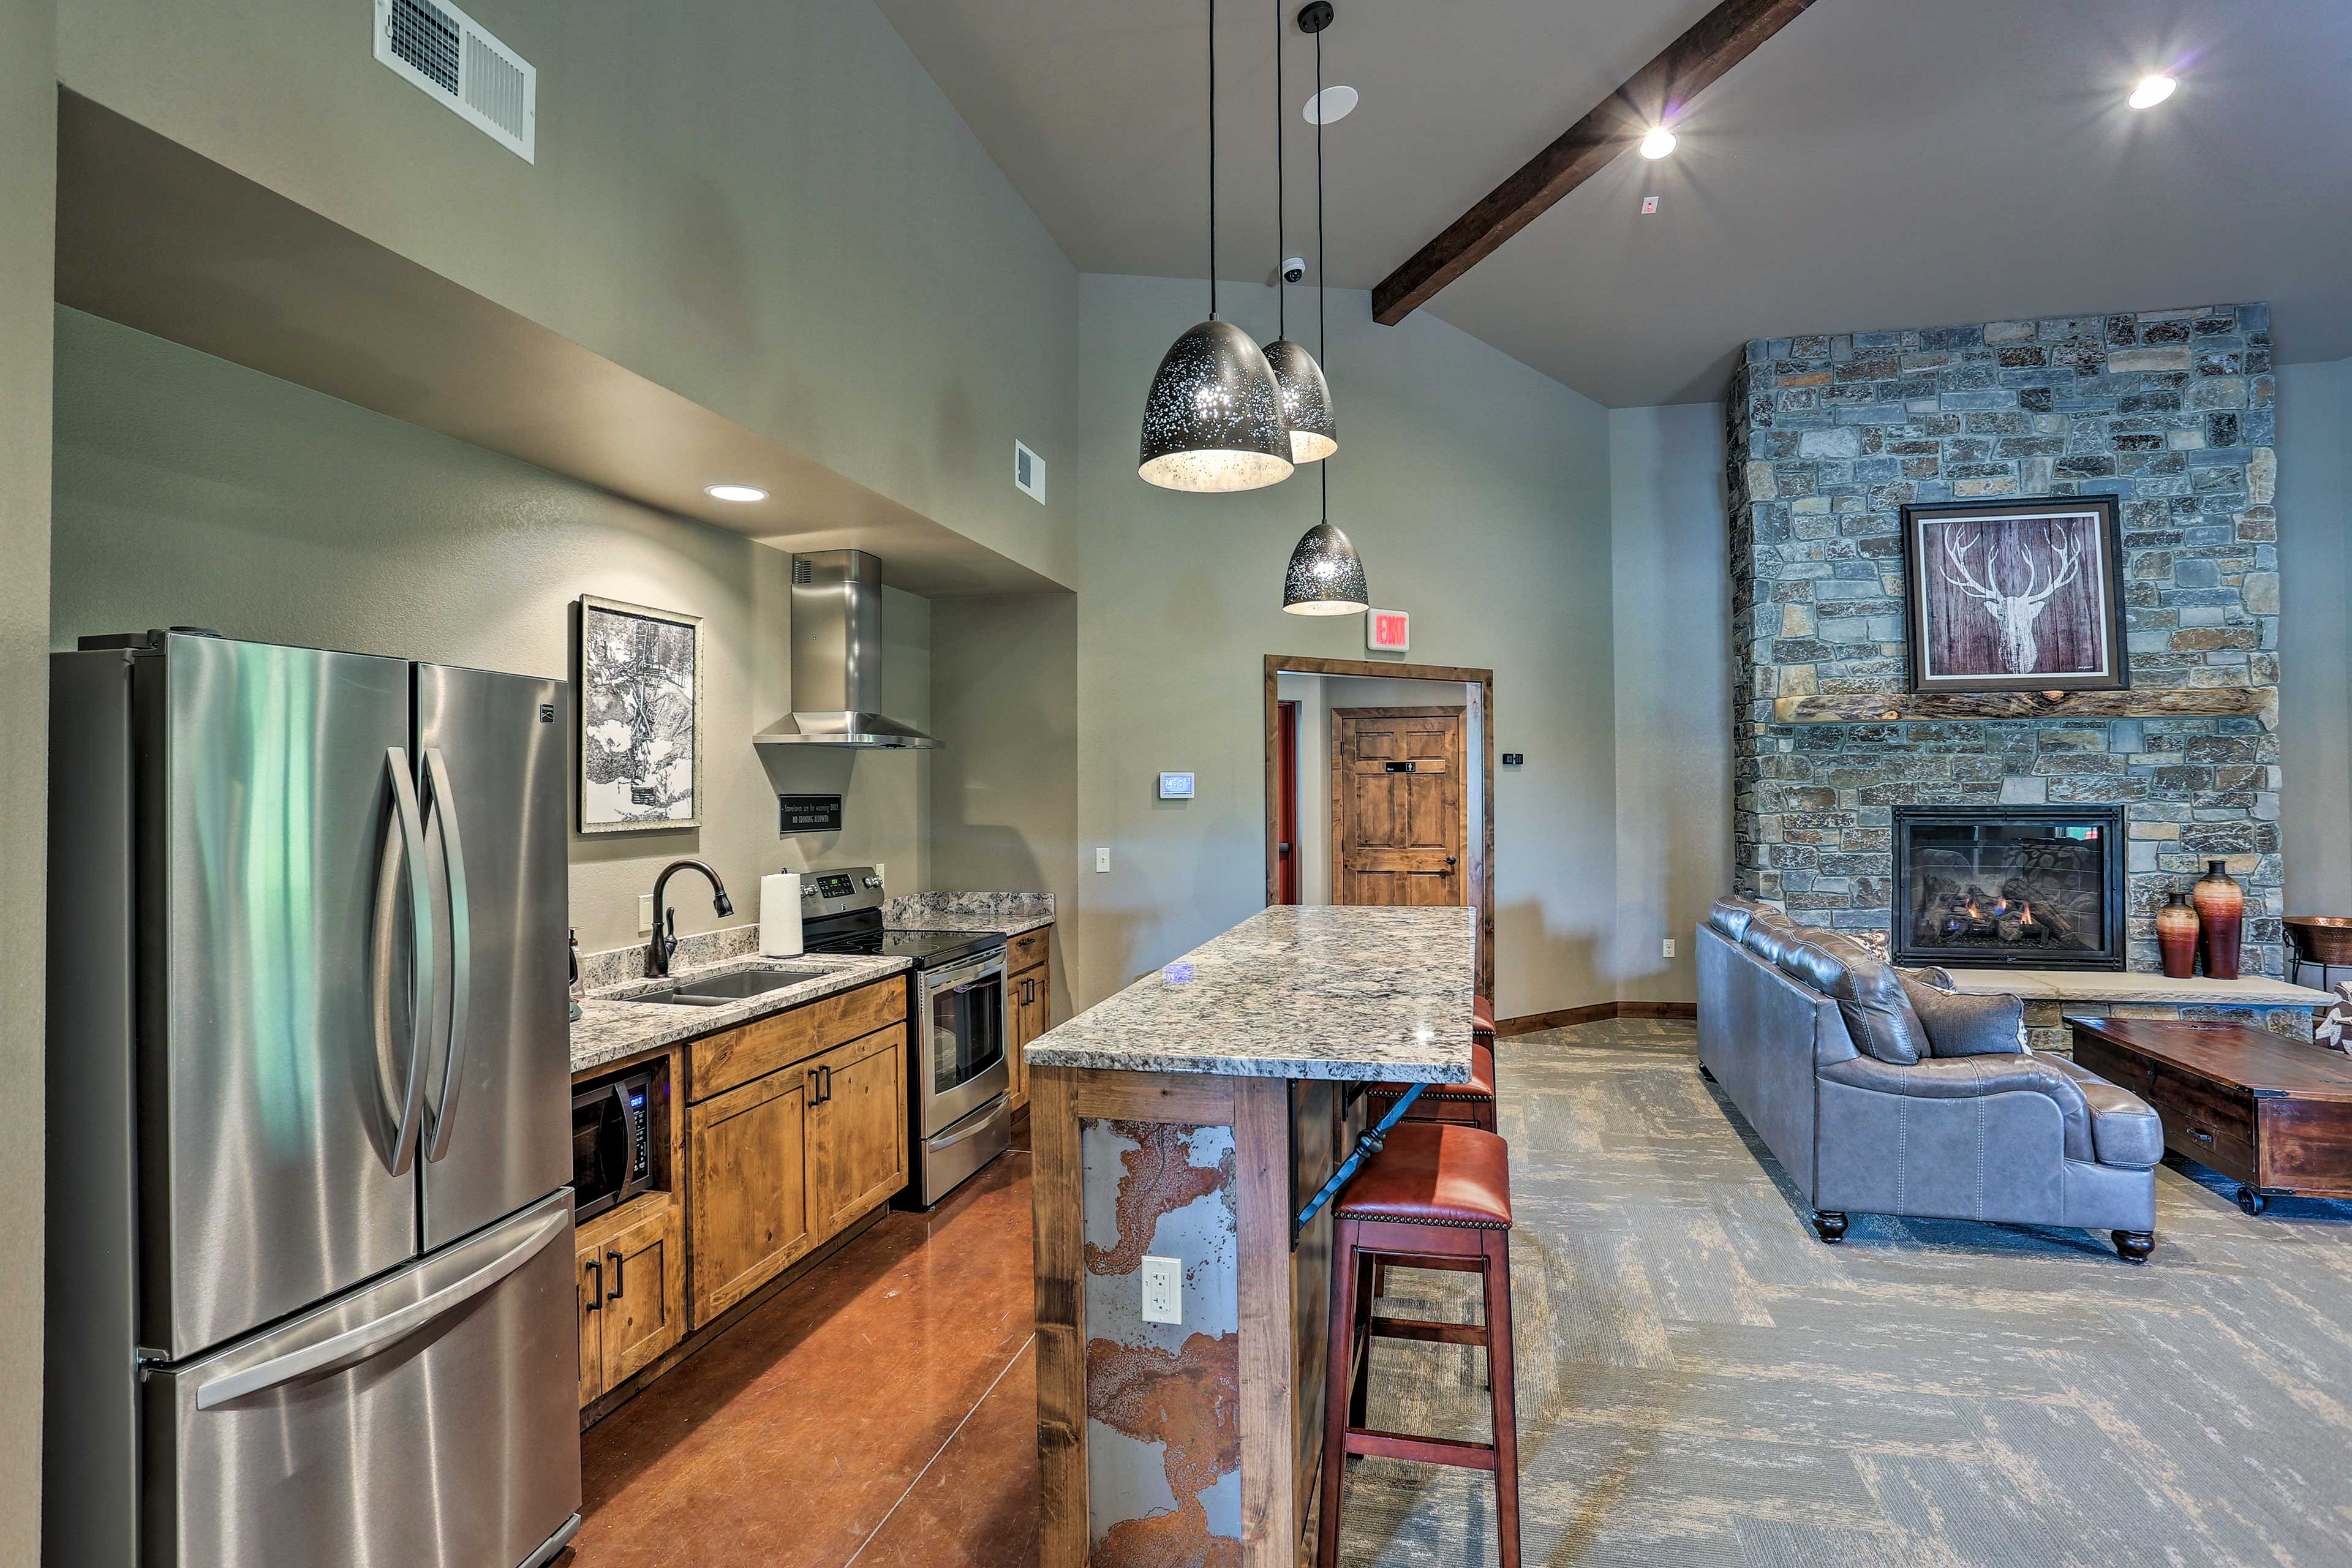 There's even a community kitchen with all the amenities.